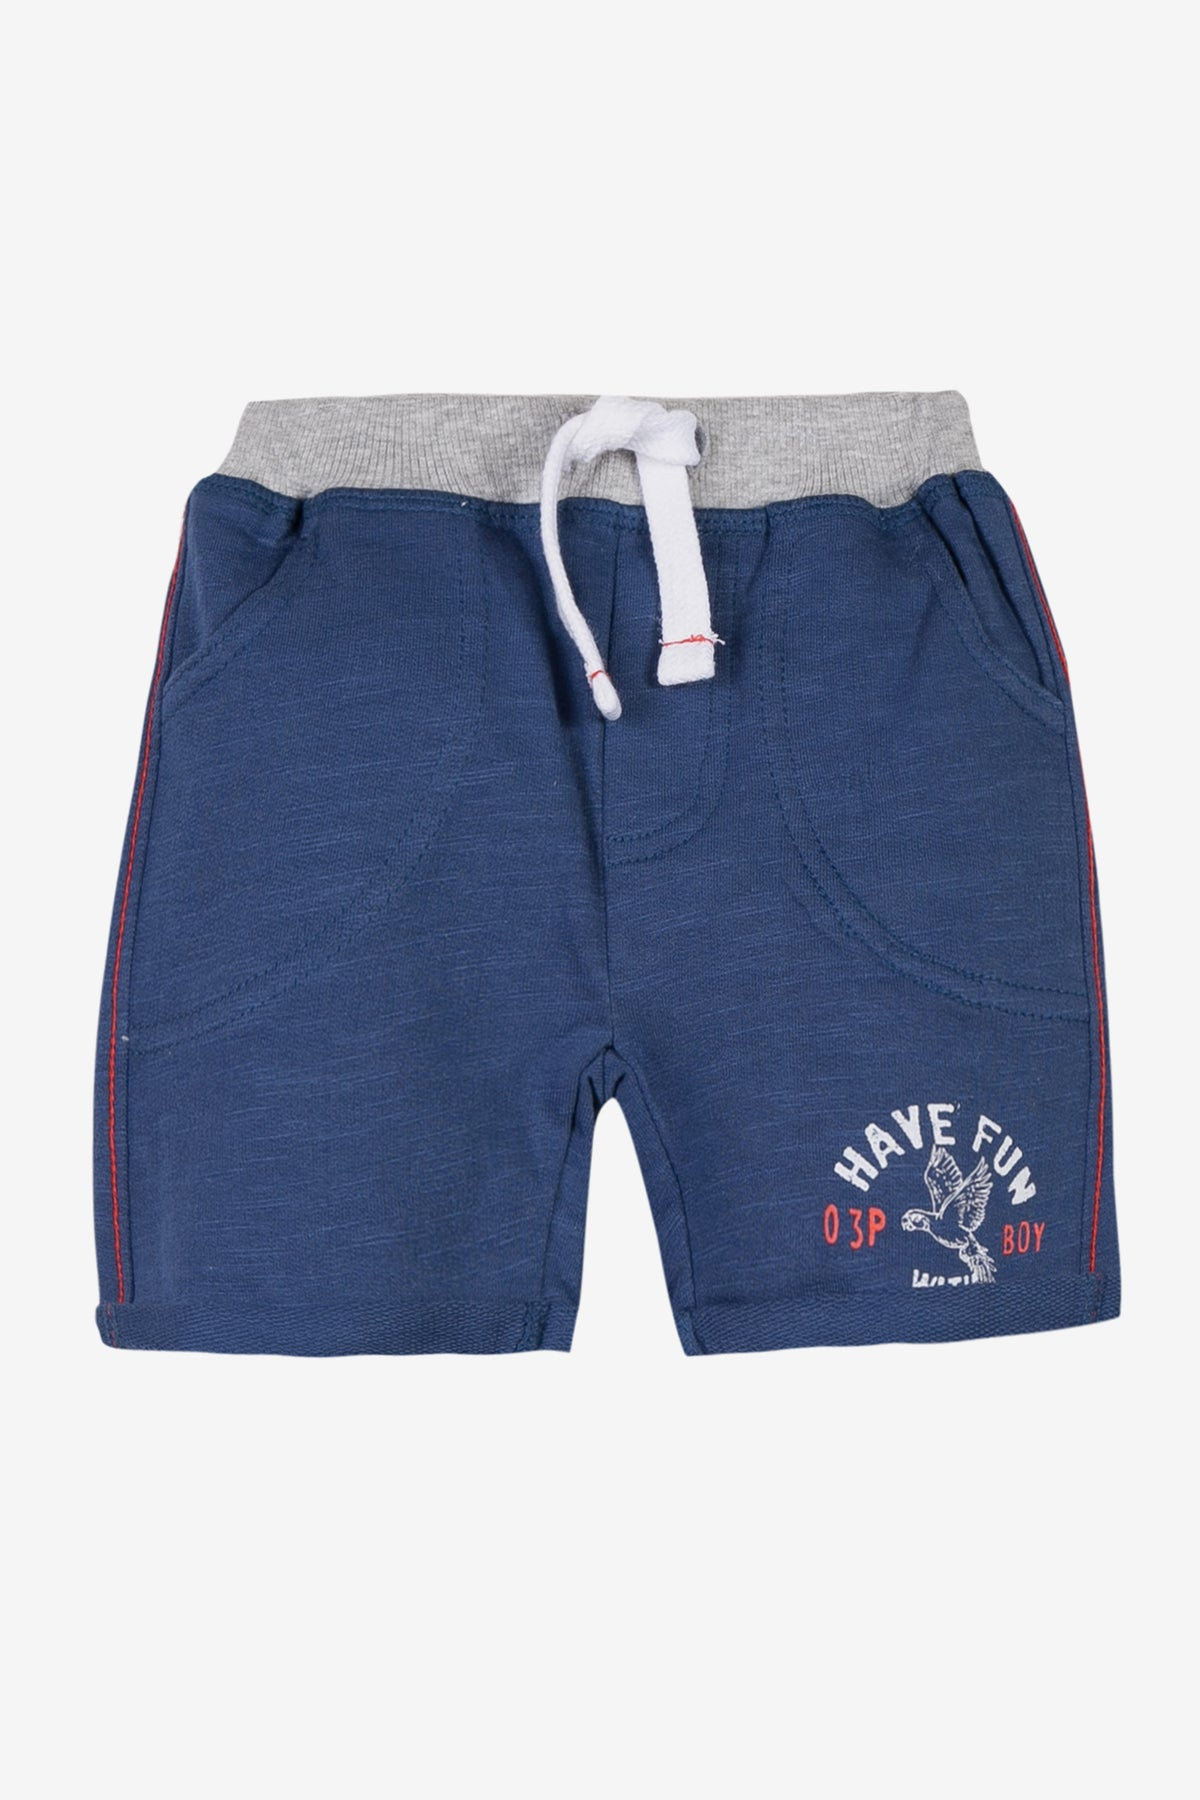 f54bfd19ba 3pommes Baby Boy Navy Blue Shorts